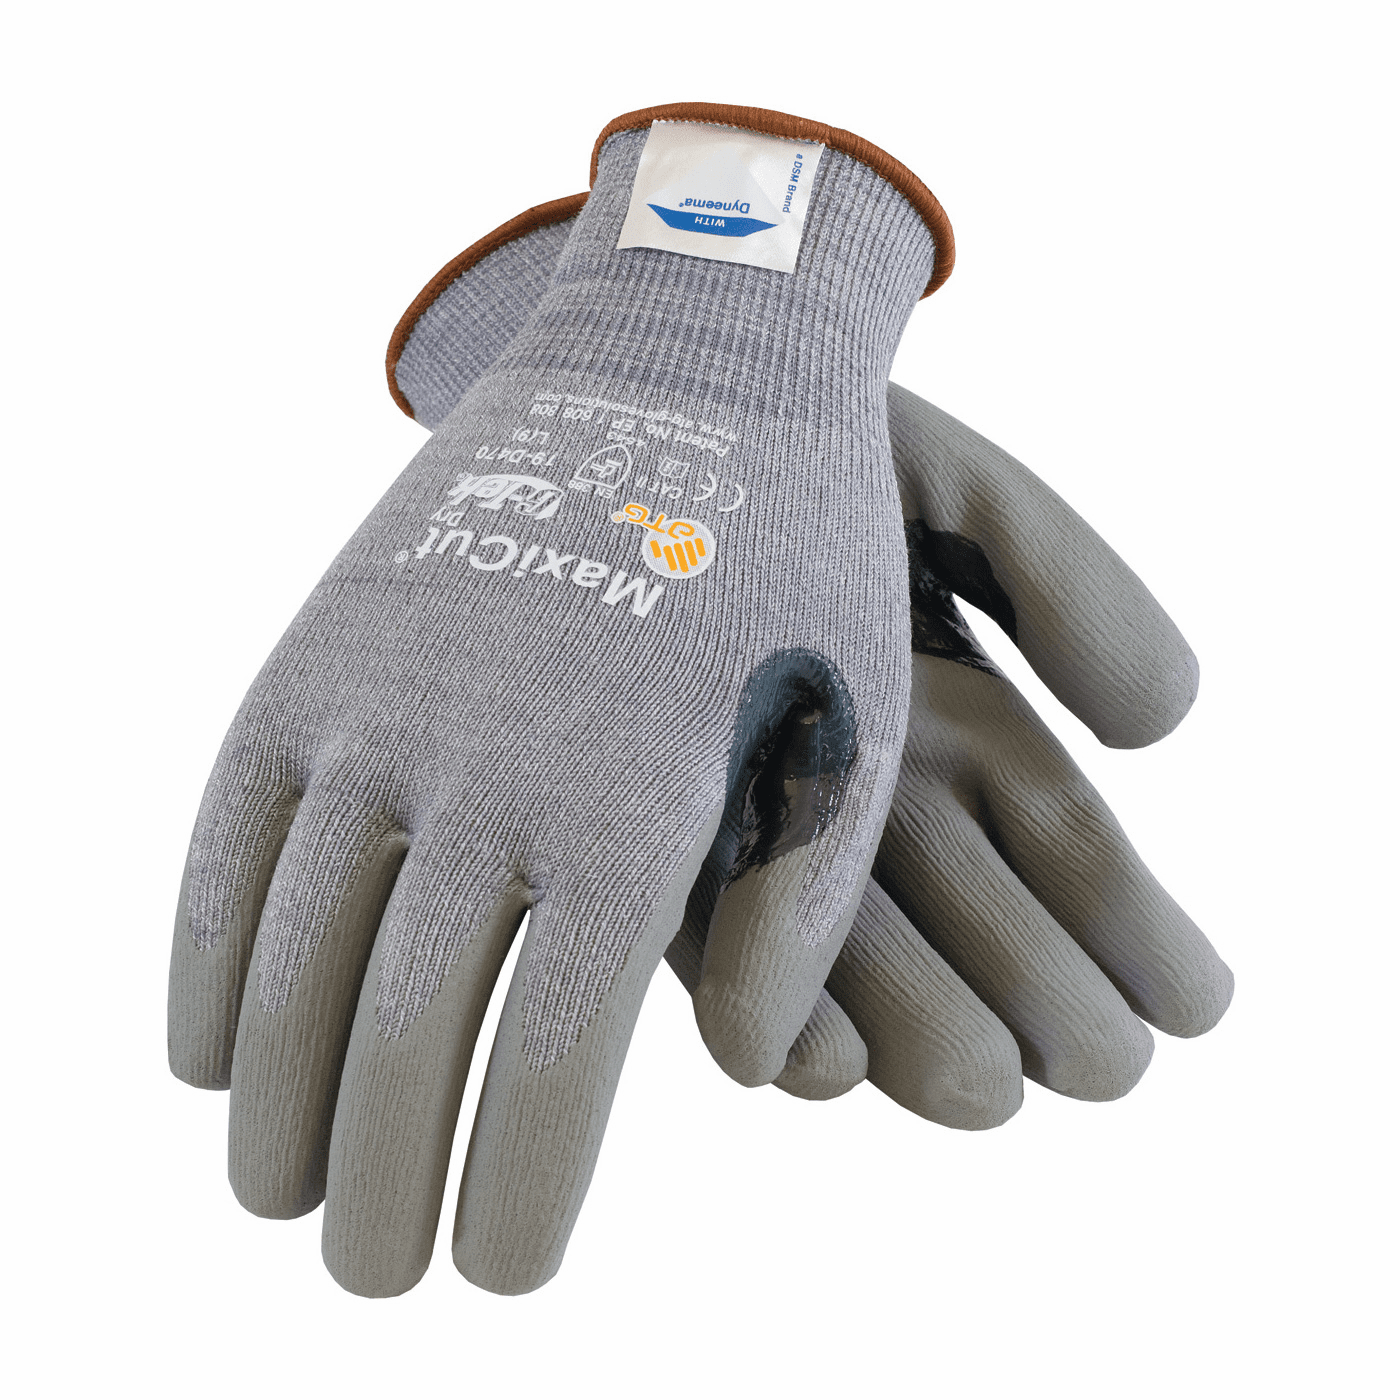 PIP, MaxiCut� Seamless Knit Dyneema� / Engineered Yarn Glove with Nitrile Coated Foam Grip on Palm & Fingers